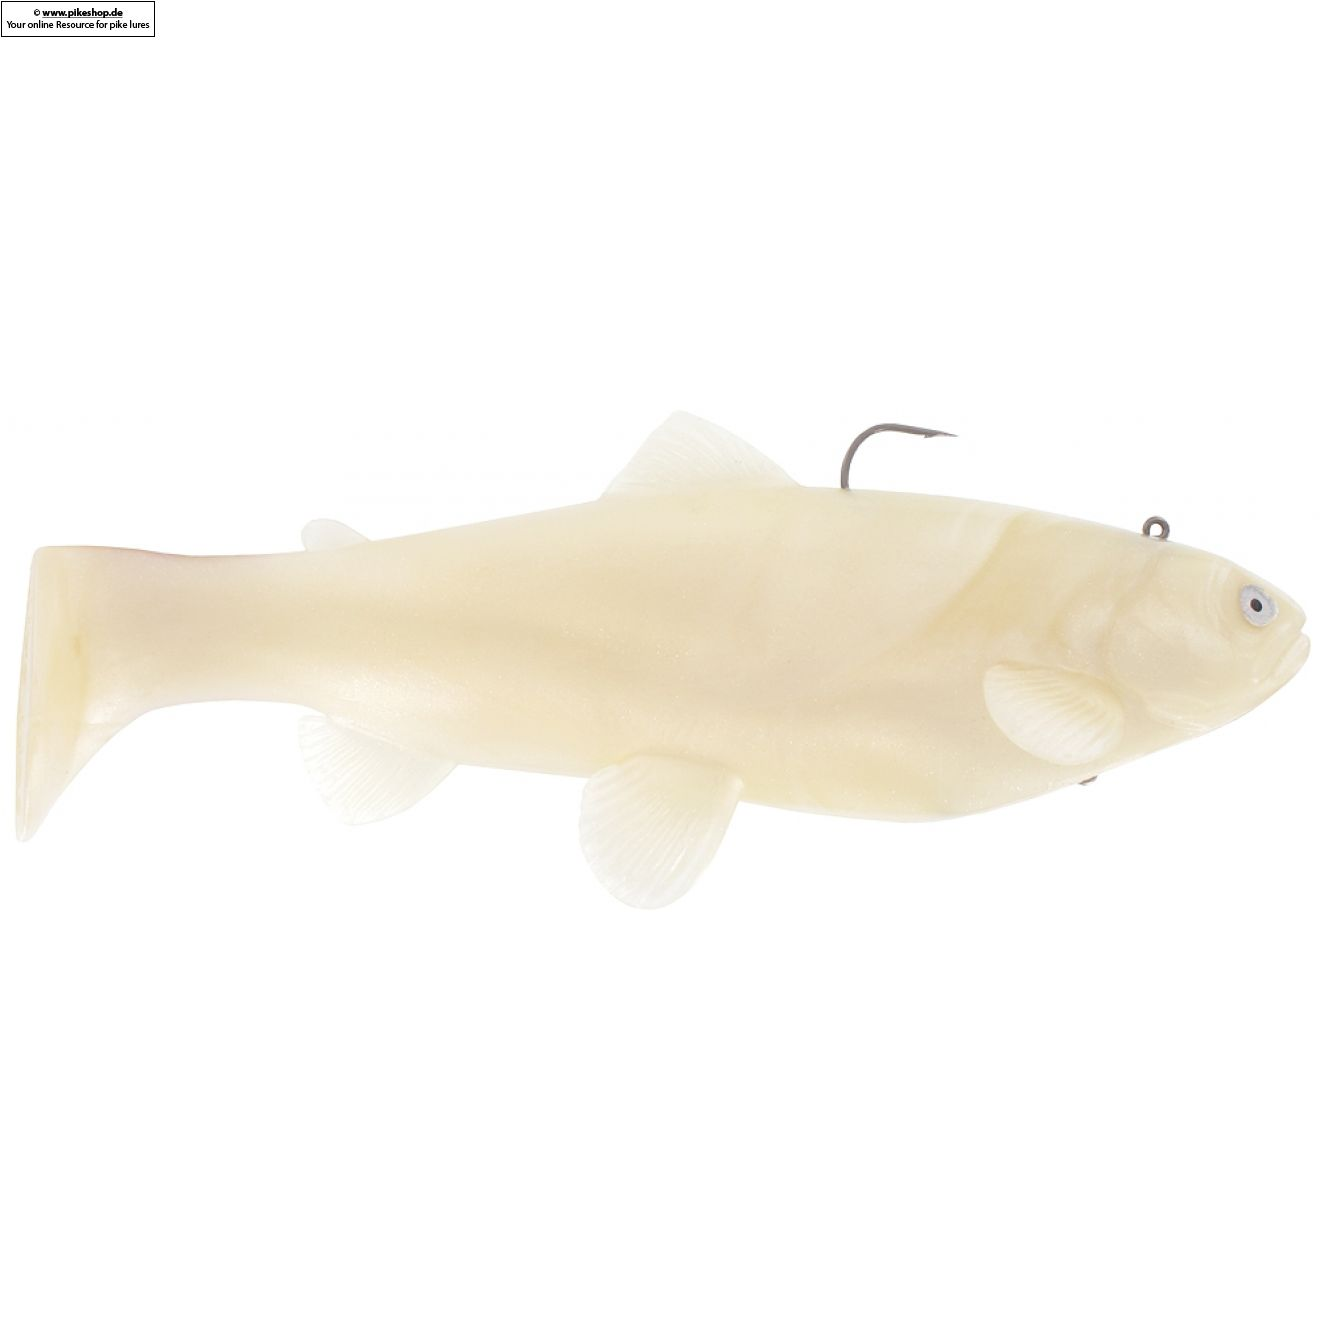 Boot Tail (Sinker) - 25cm (10 Zoll) - CA Pearl White